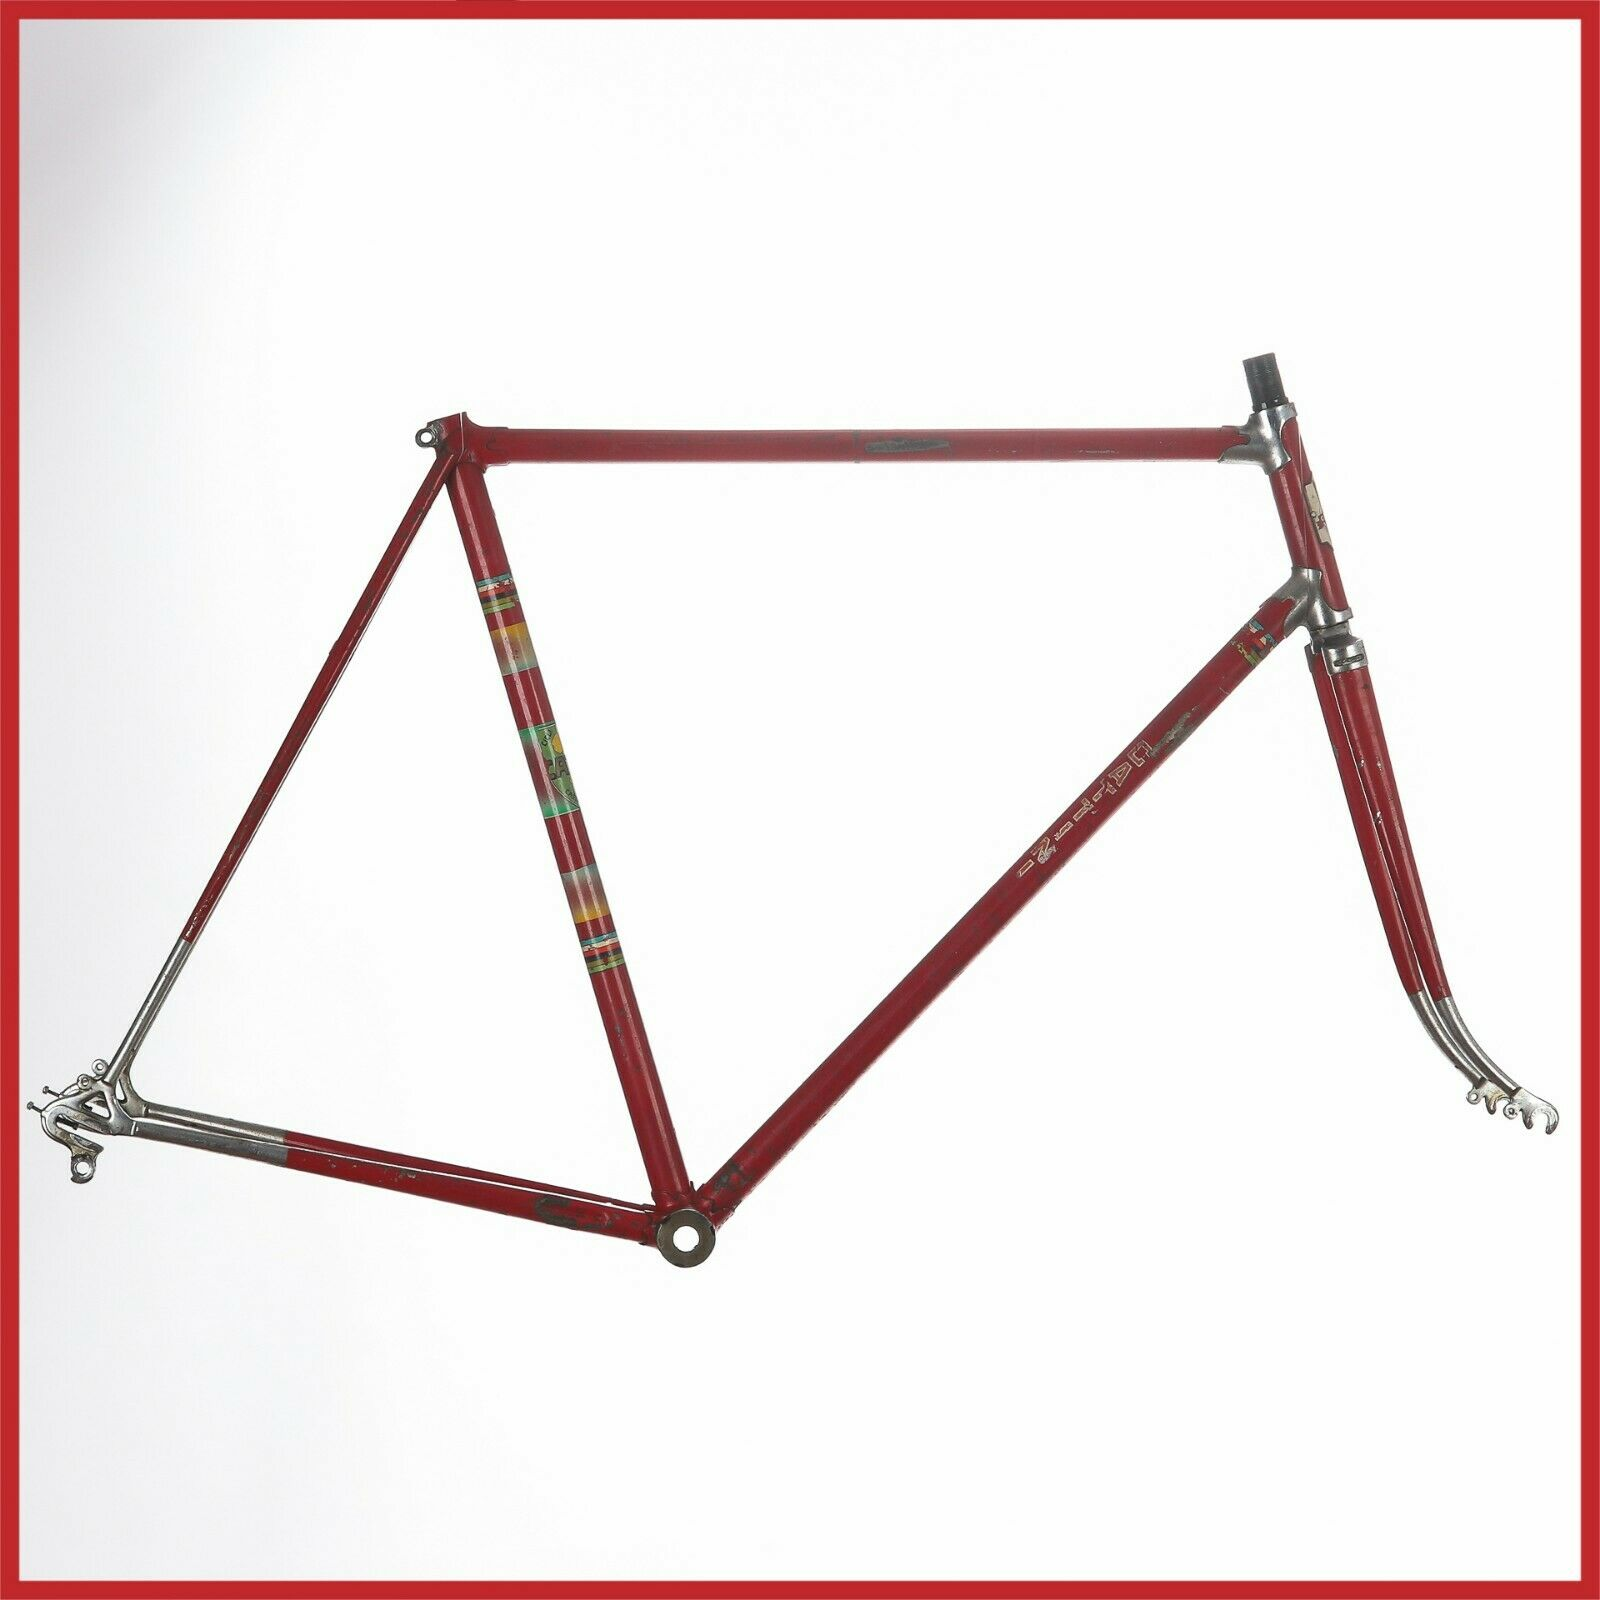 CATTINI STEEL FRAMESET  FRAME 60s CAMPAGNOLO VINTAGE LUGS ROAD RACING BIKE OLD  lowest whole network